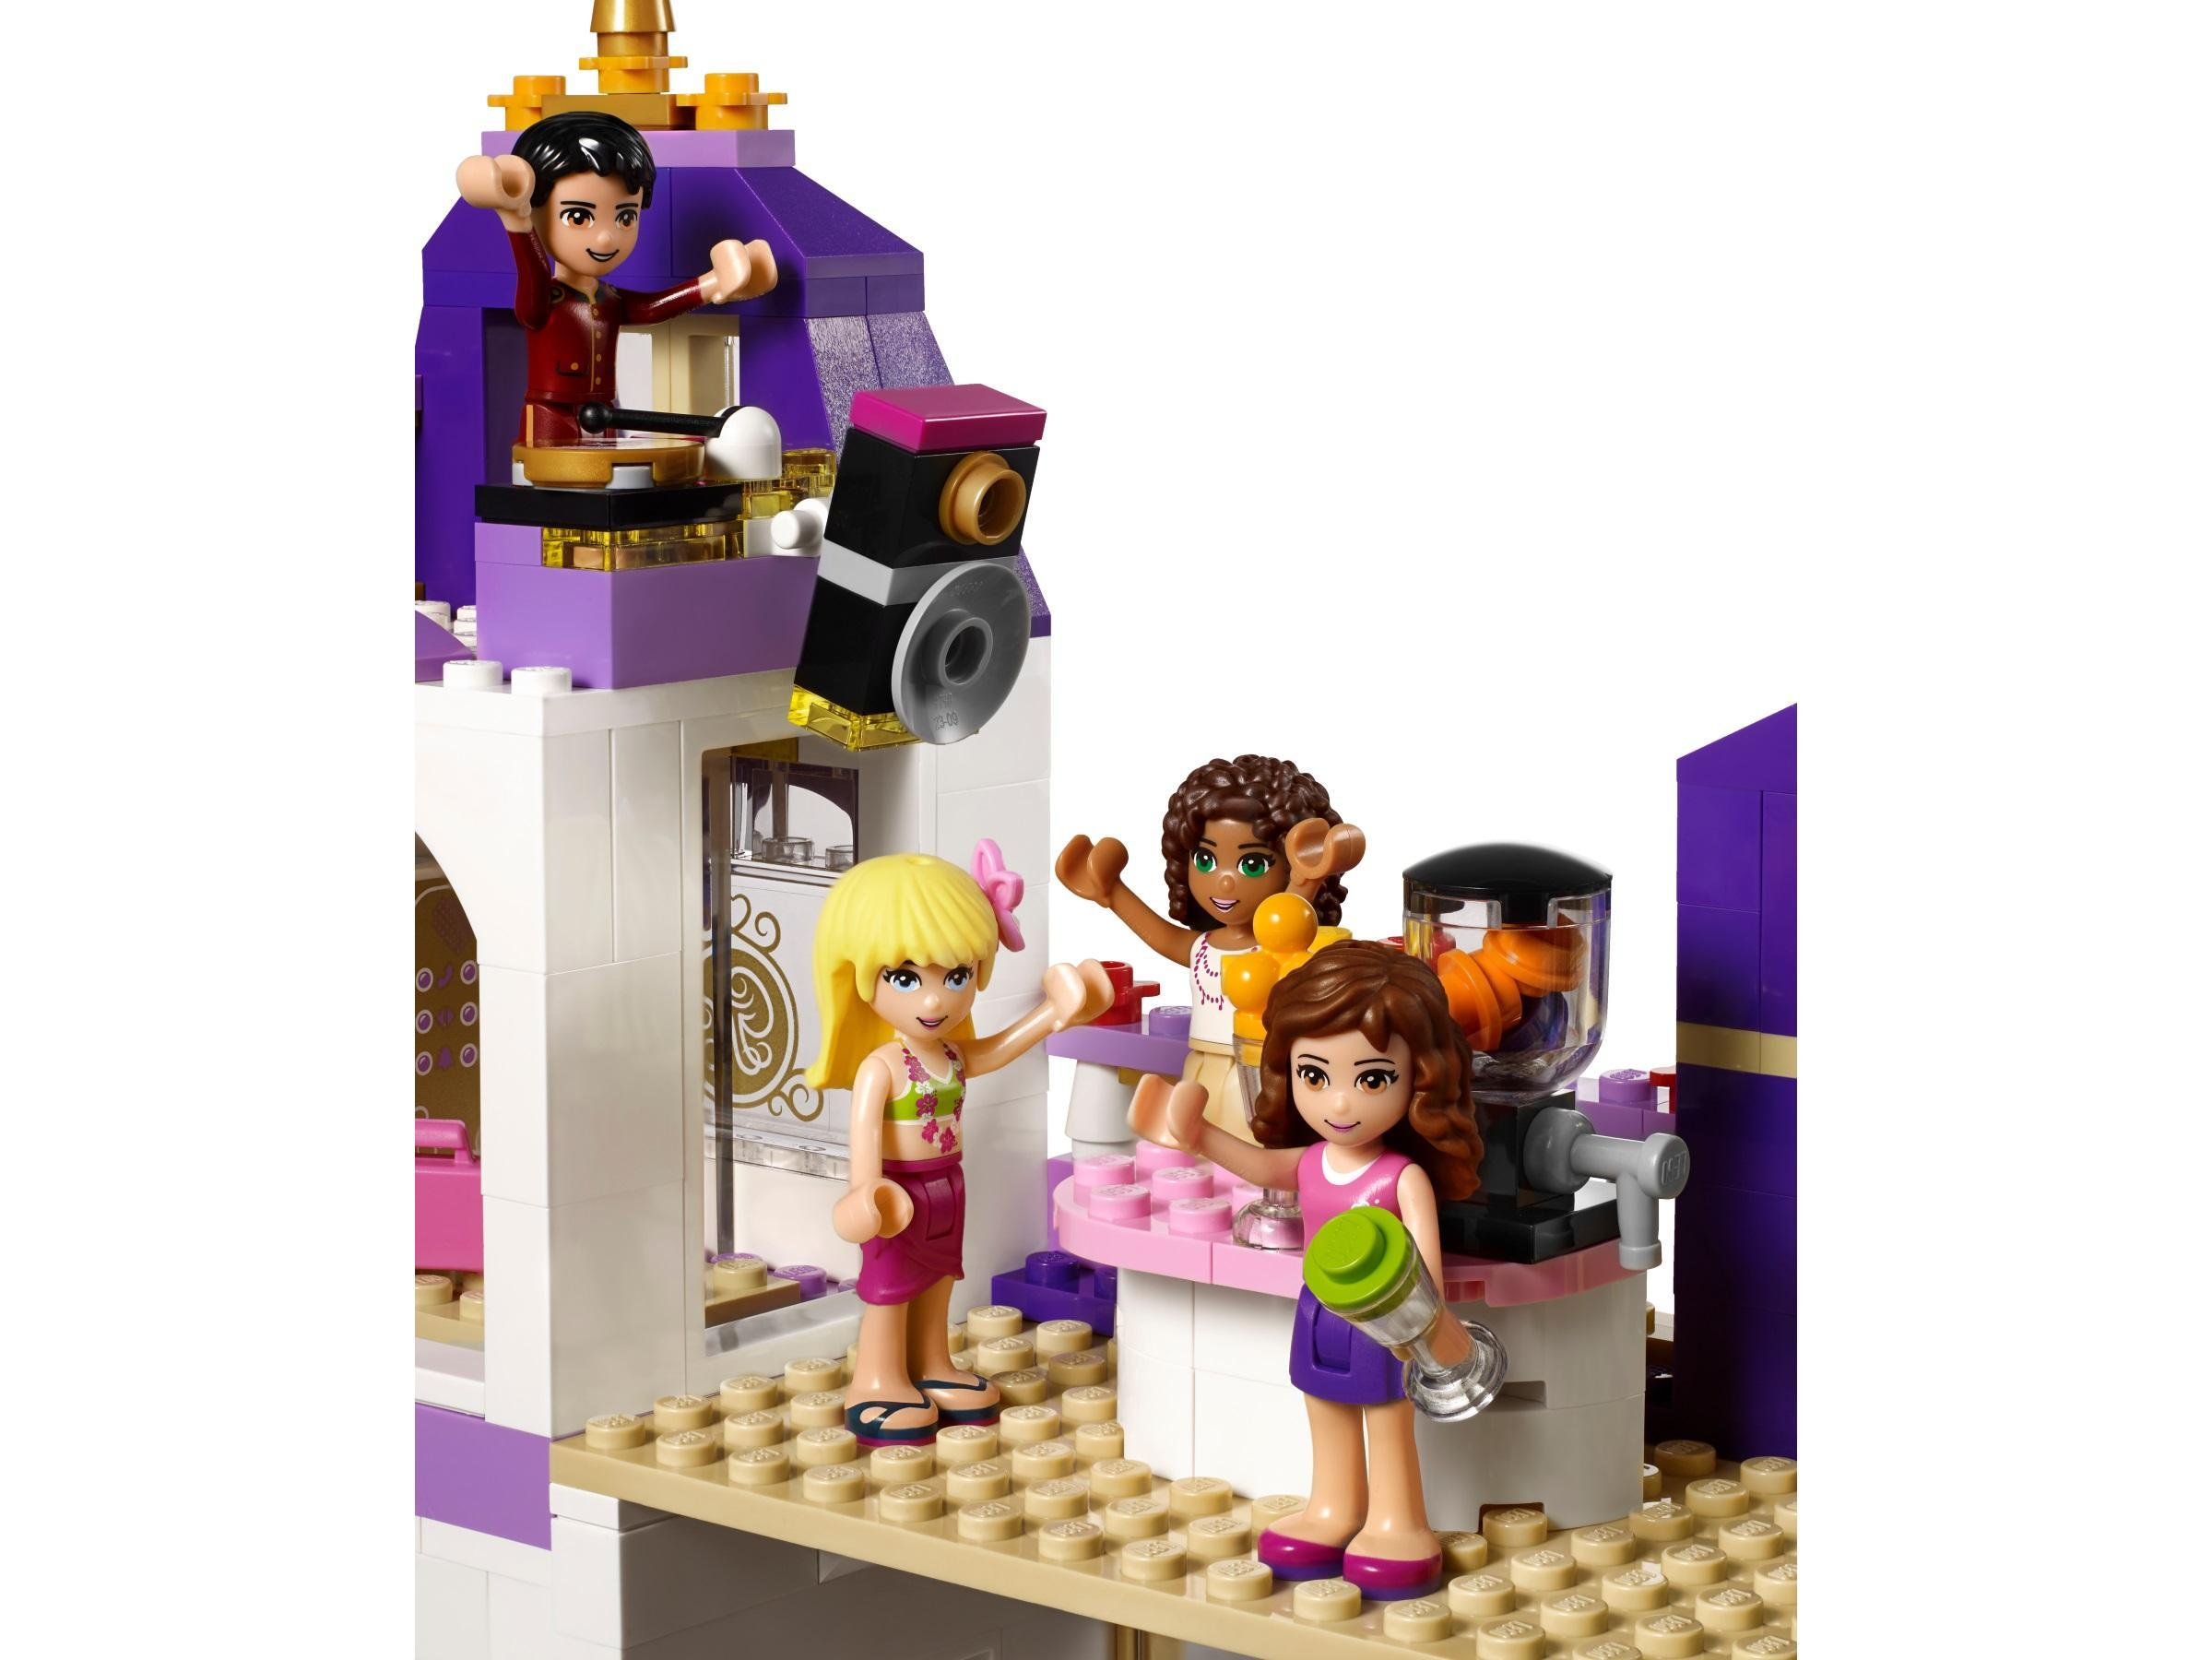 Lego friends heartlake grand hotel 41101 lego friends uk - View Larger